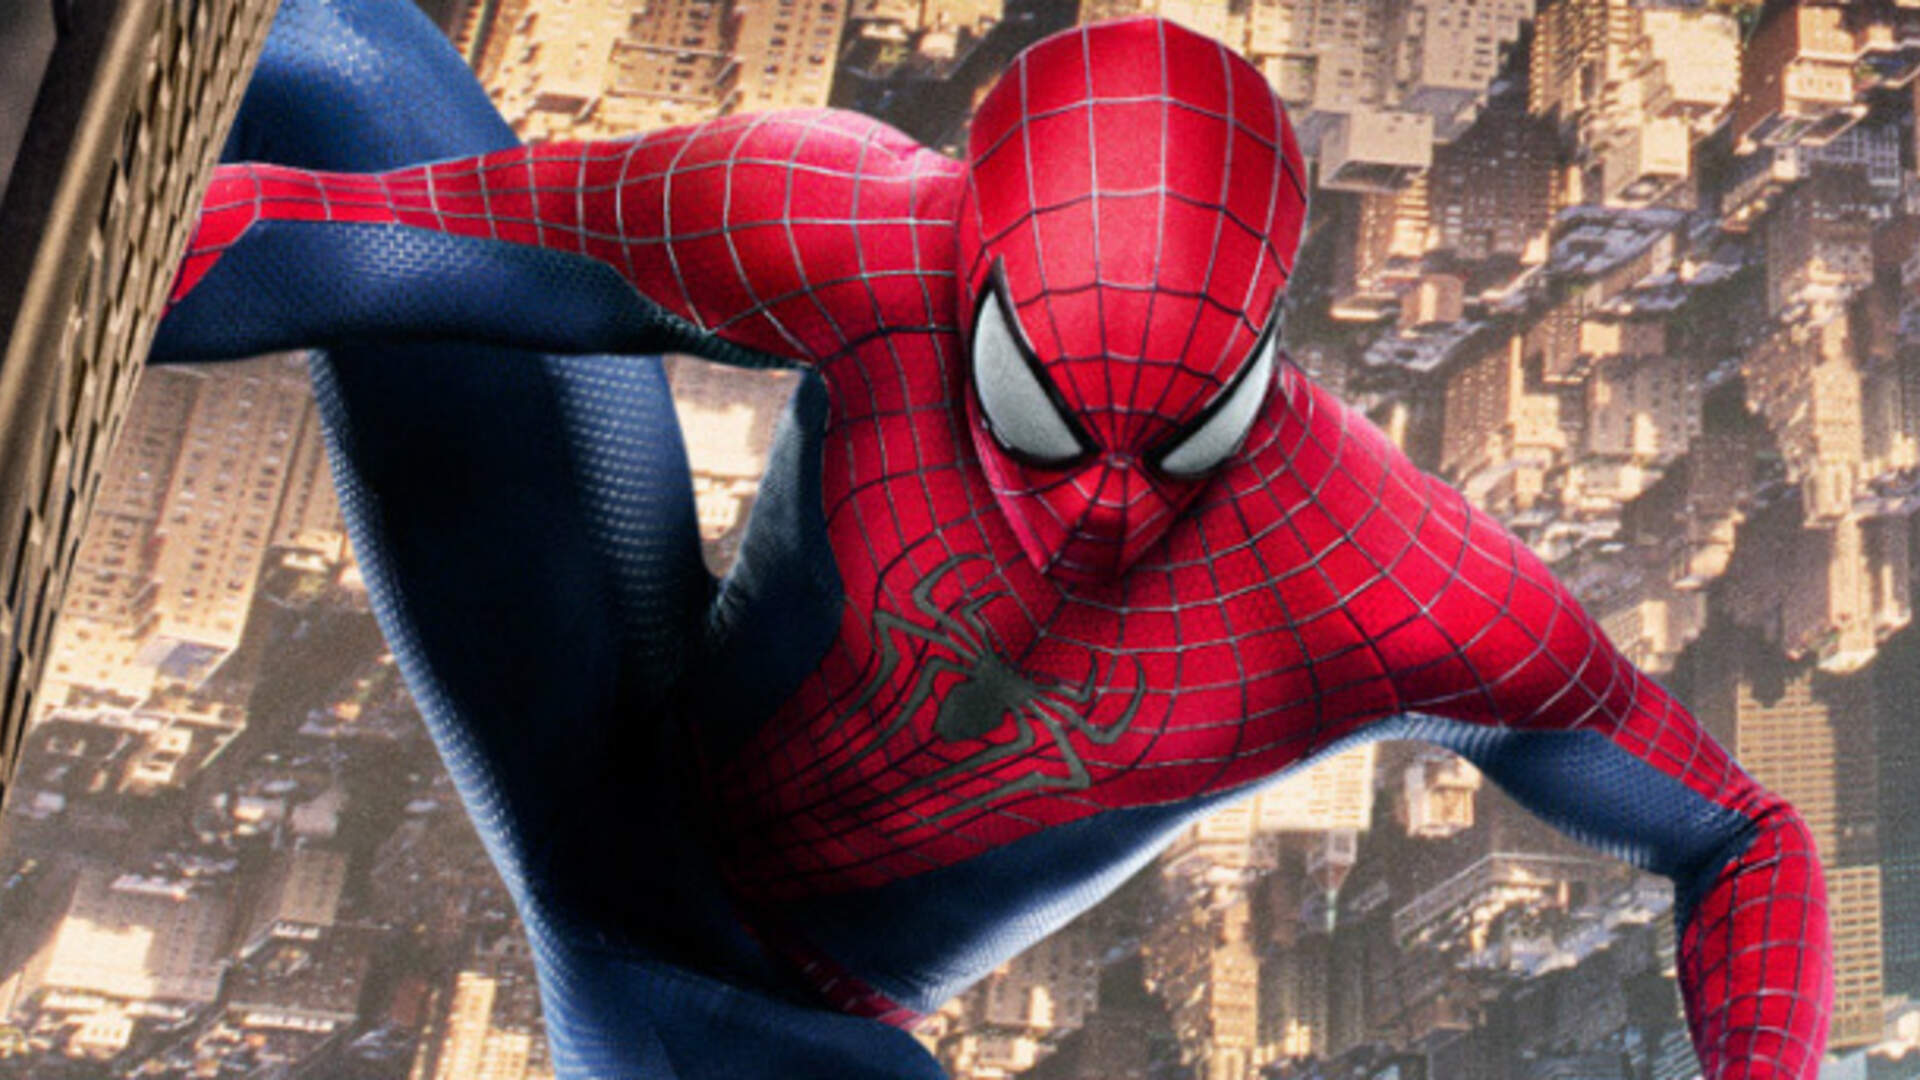 Activision's Spider-Man and Ninja Turtles Games Delisted on Digital Stores